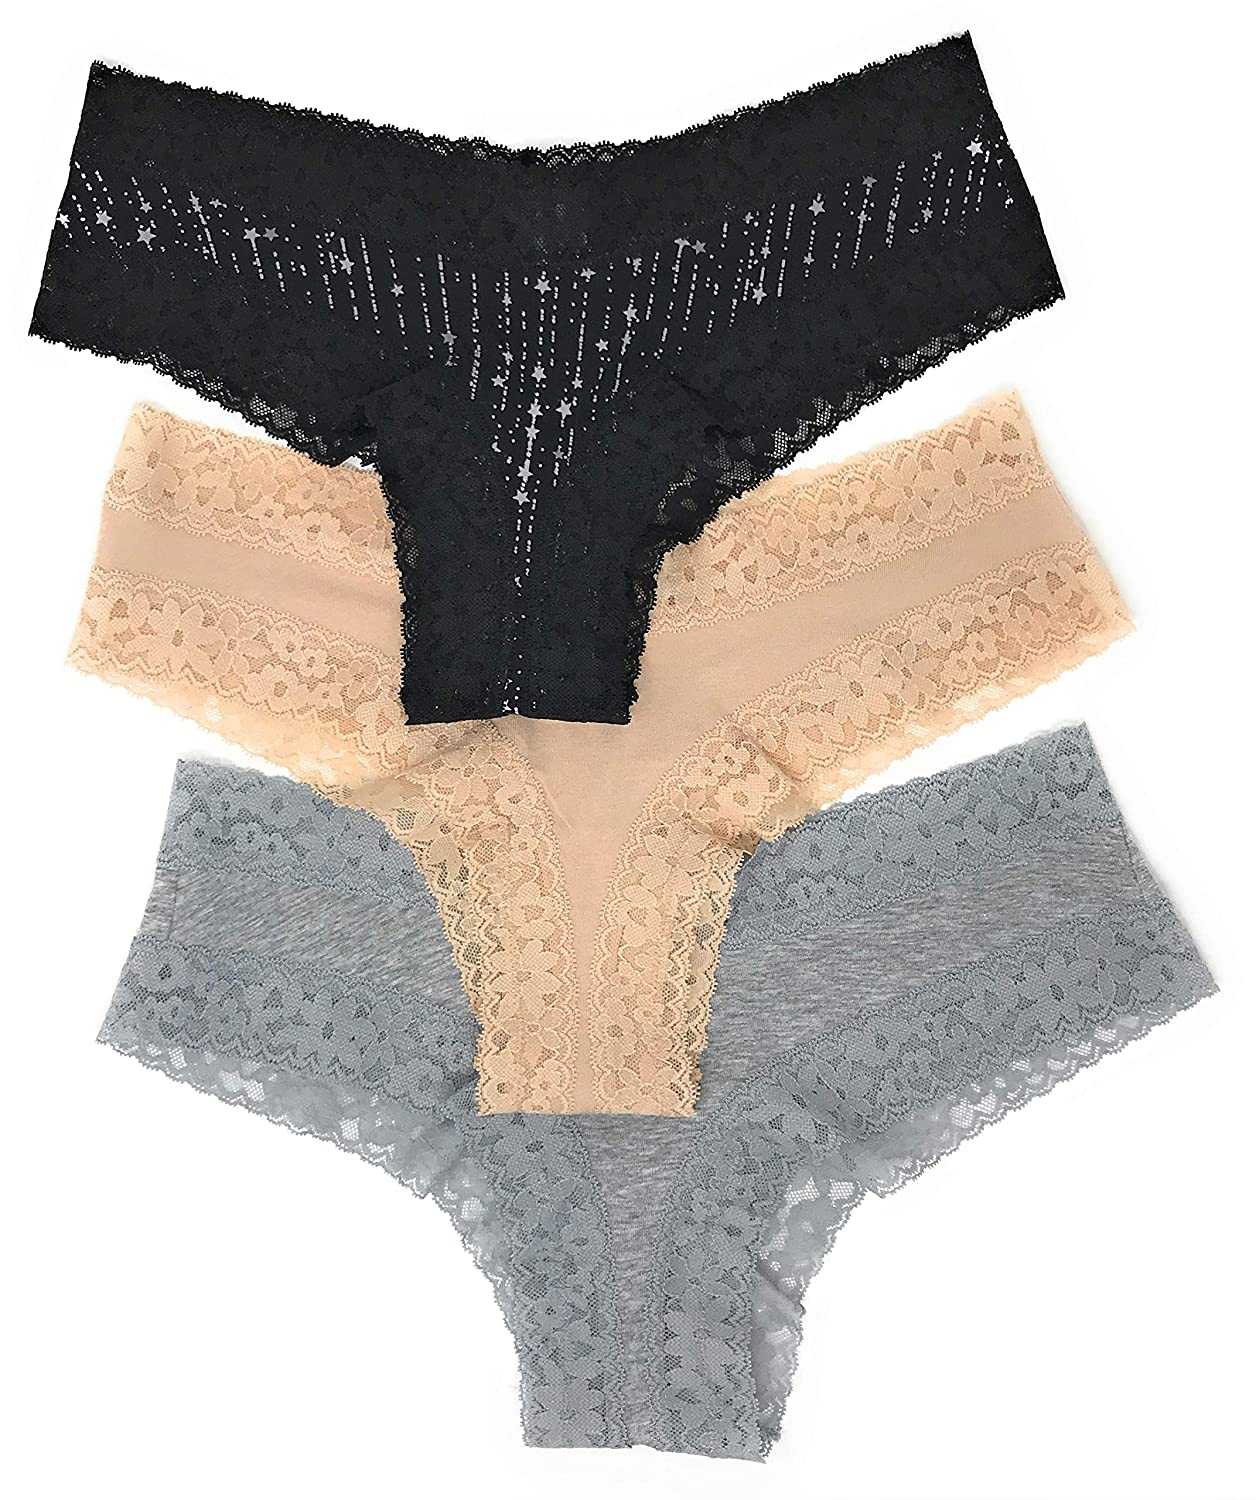 07e5d5acb1 Victoria s Secret Lace Cheeky Panty Set of 3 at Amazon Women s Clothing  store